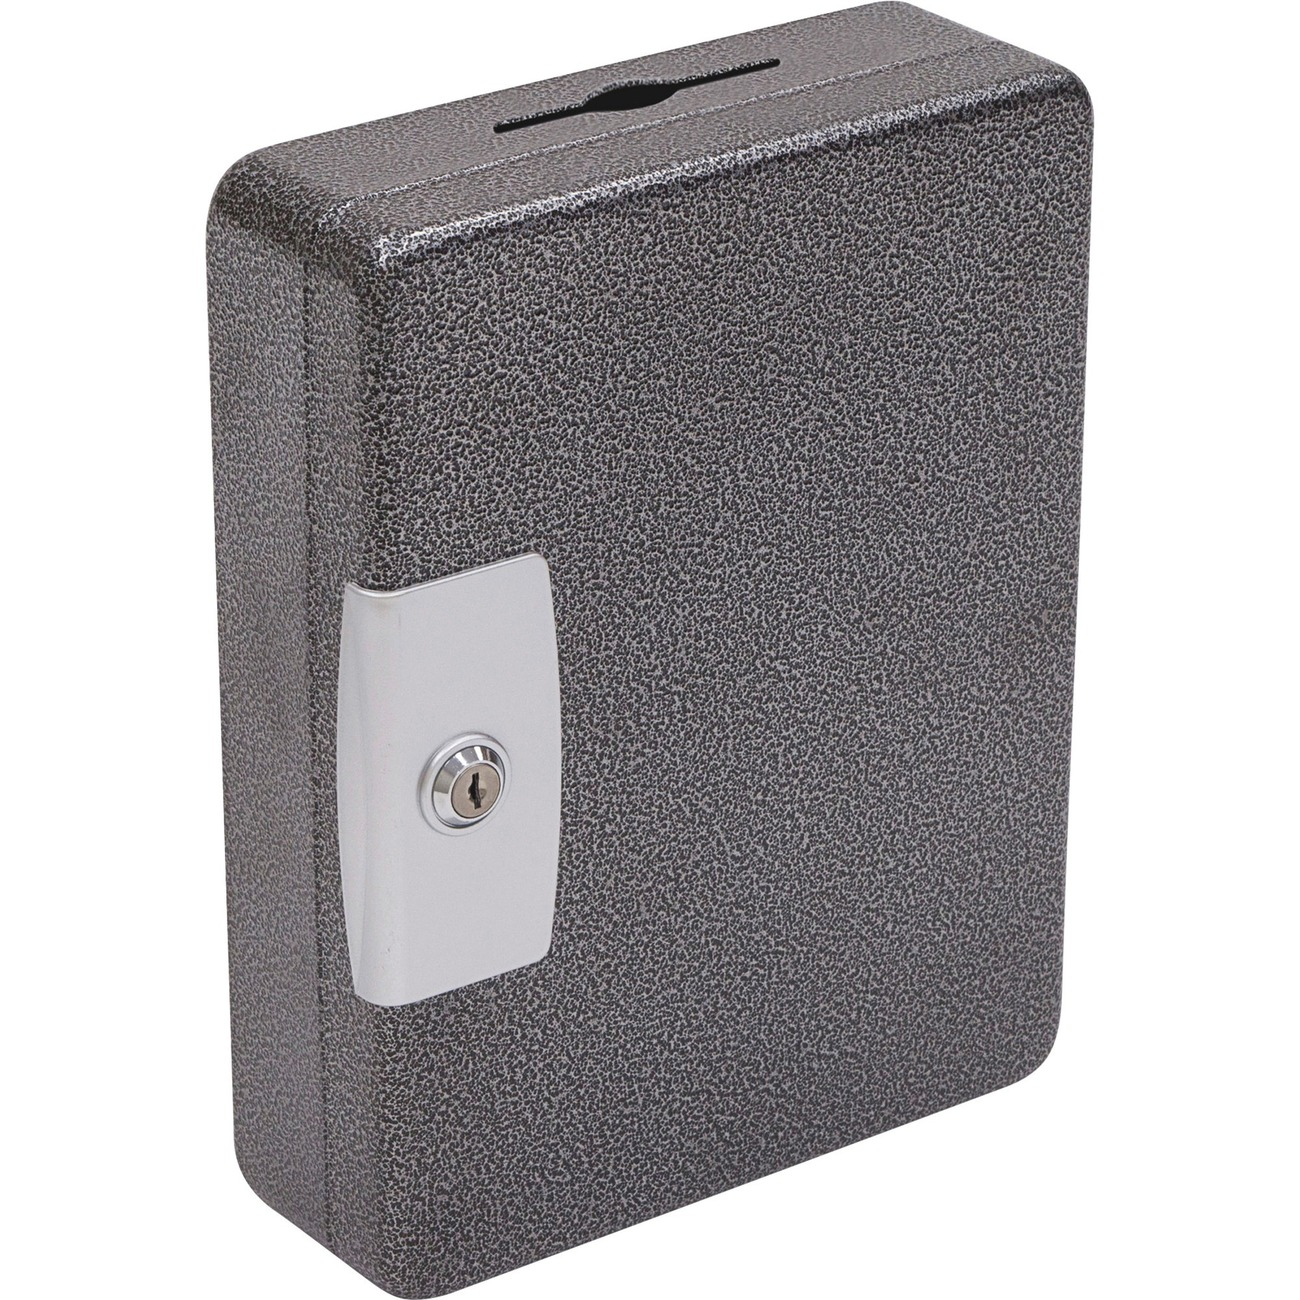 Drawn Formed Seamless Body And A Lock That Resists Prying Or Tampering Unique Key Drop Slot Is Perfect For After Hours Security